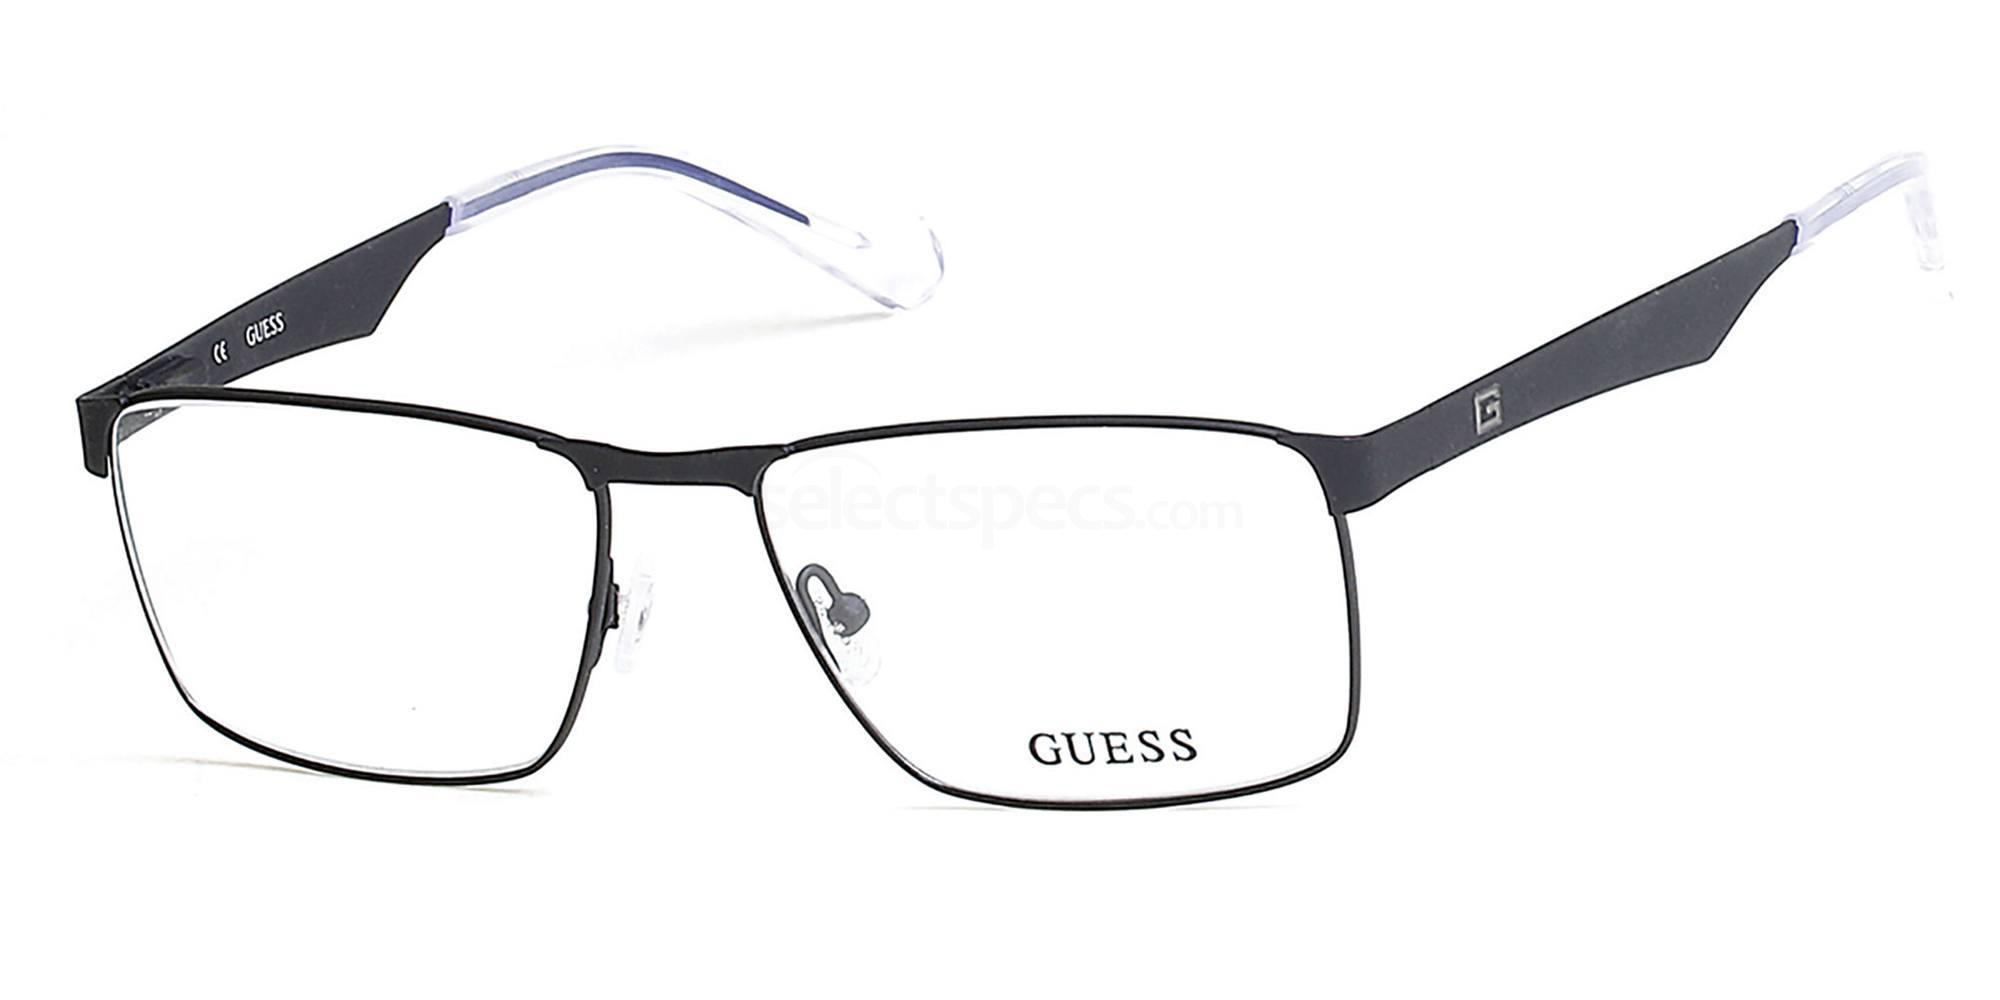 002 GU1903 Glasses, Guess